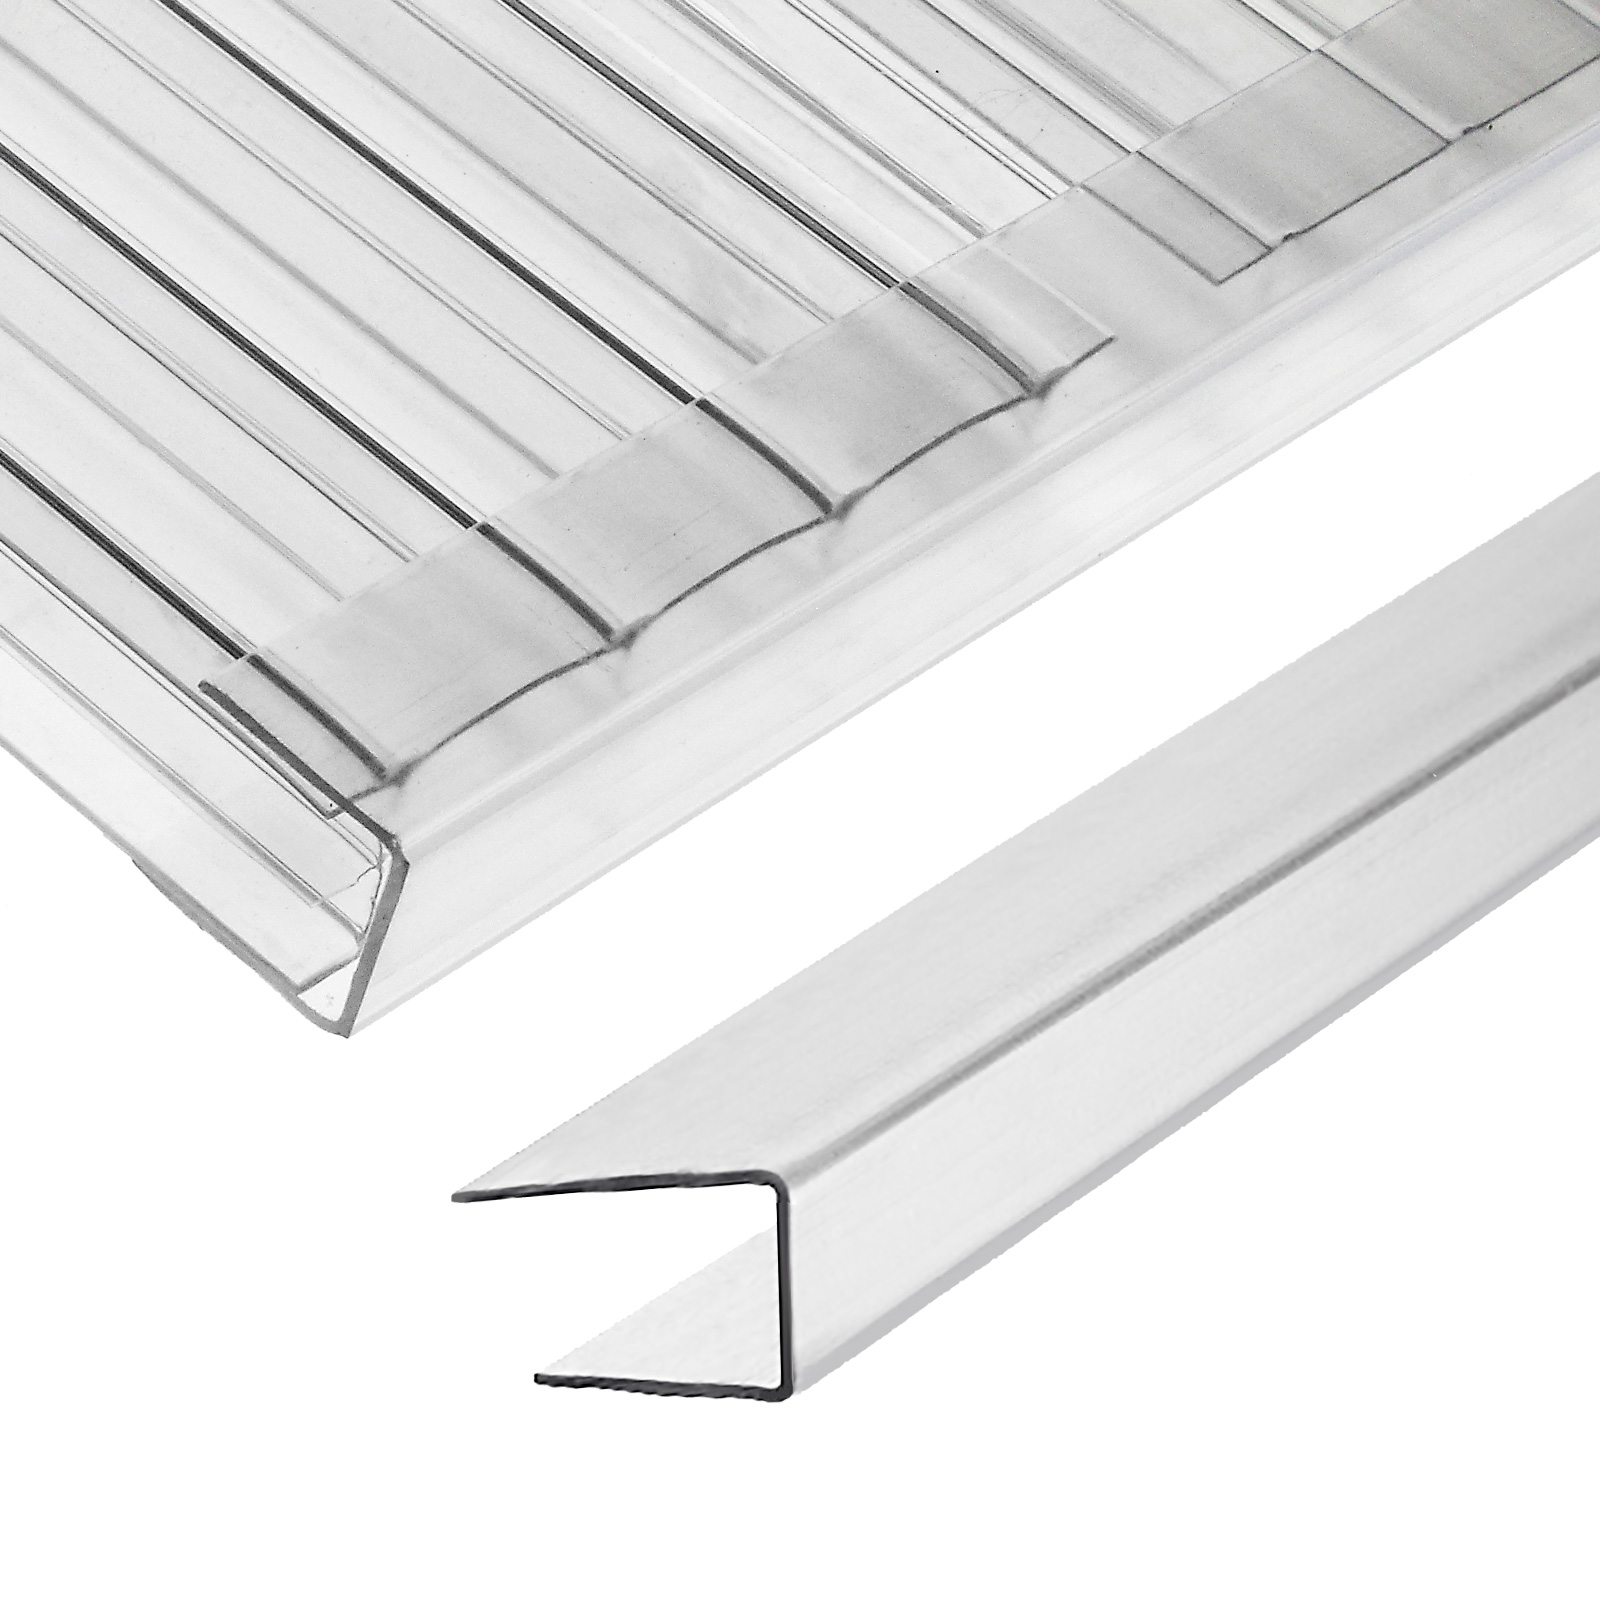 Snapa Snap Fix Upvc Plastic Glazing Bar System For Low